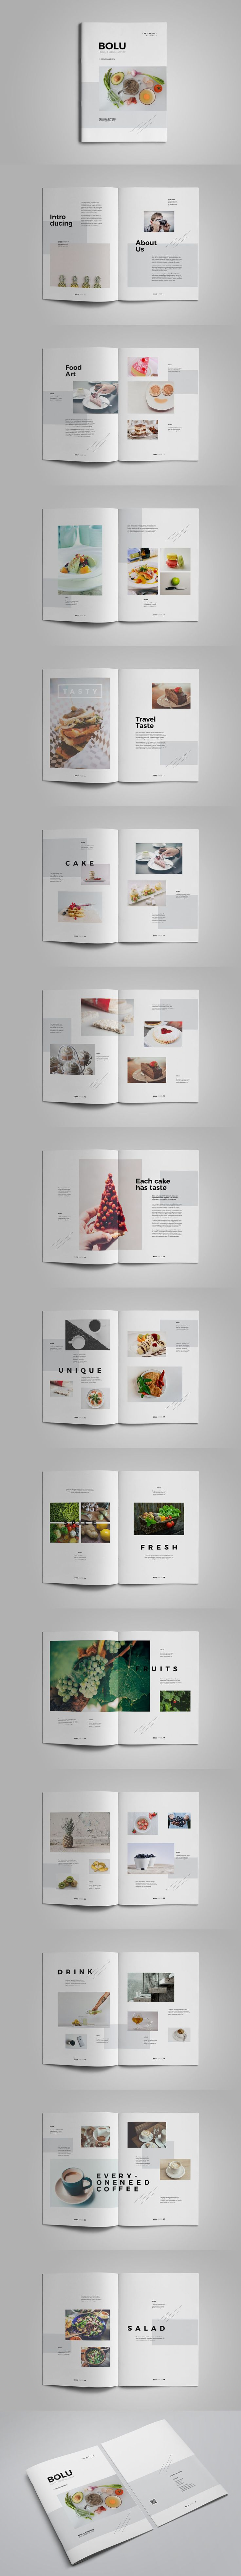 Food Photography Brochure Template InDesign INDD - 30 unique pages, A4 & Letter sizes